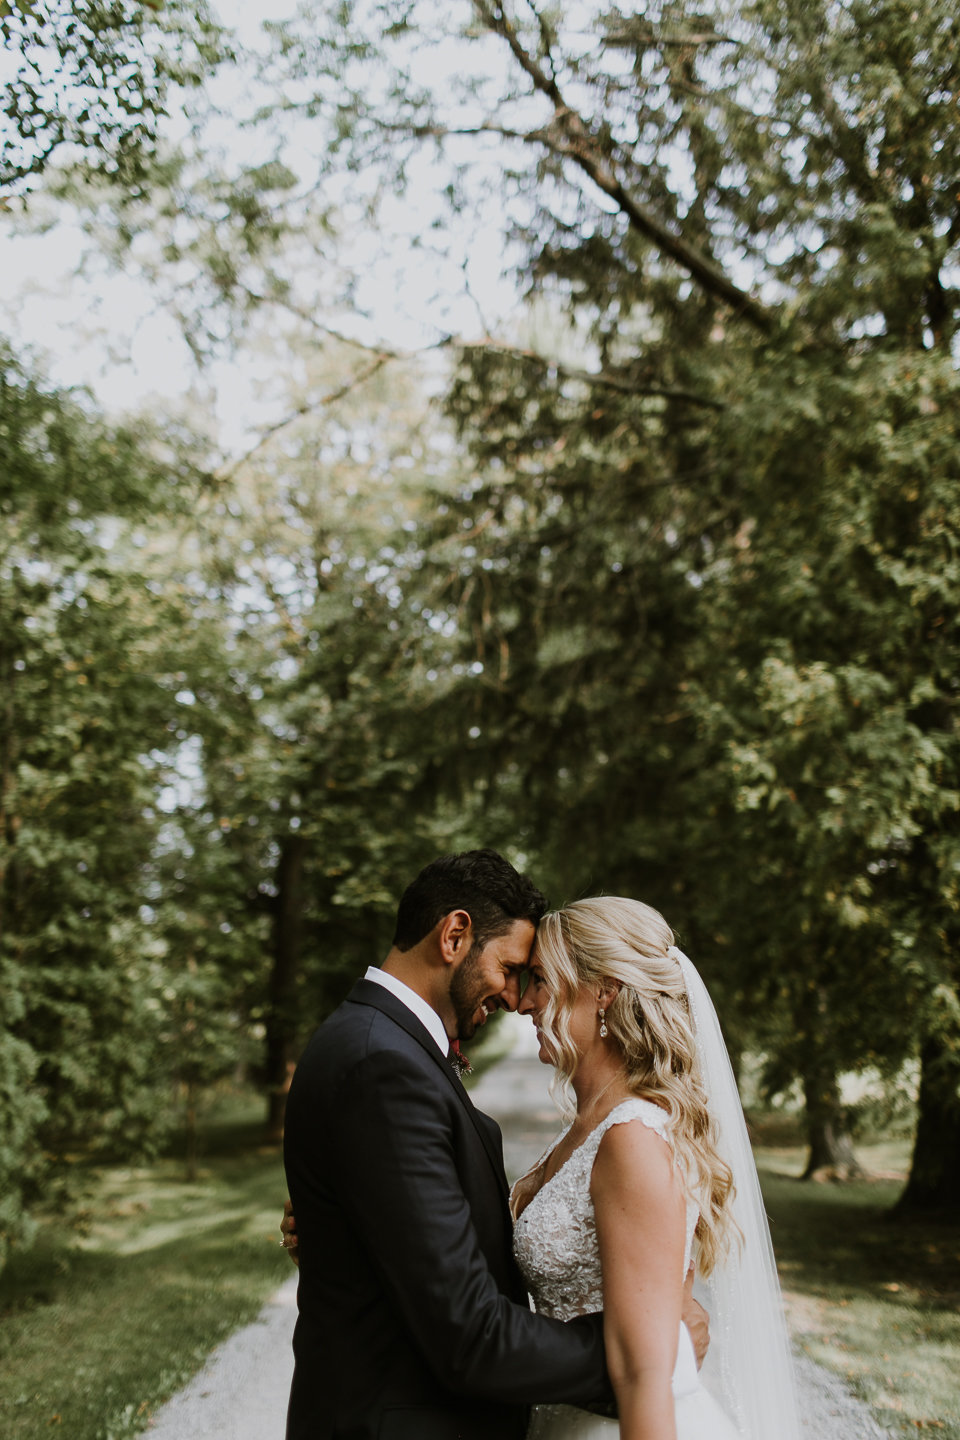 johnandsamanthabutler-toronto-wedding-photographer-54